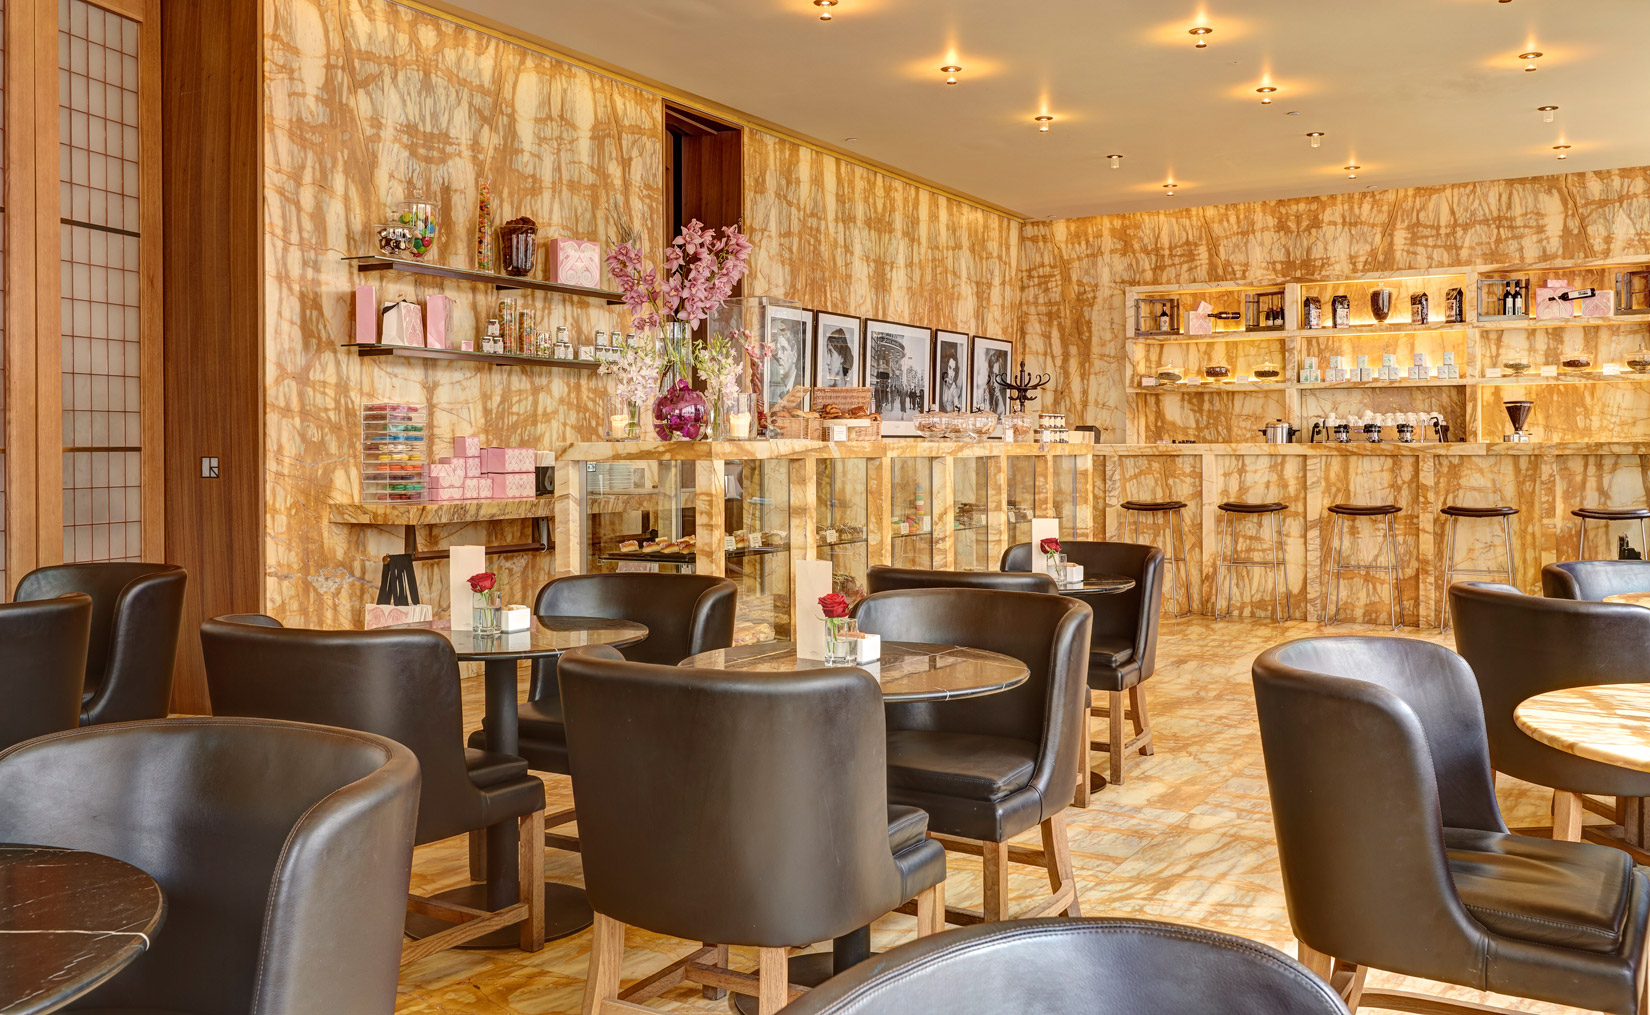 The Café – London's first dessert (only) restaurant – is part of the historic Café Royal hotel built in 1865.